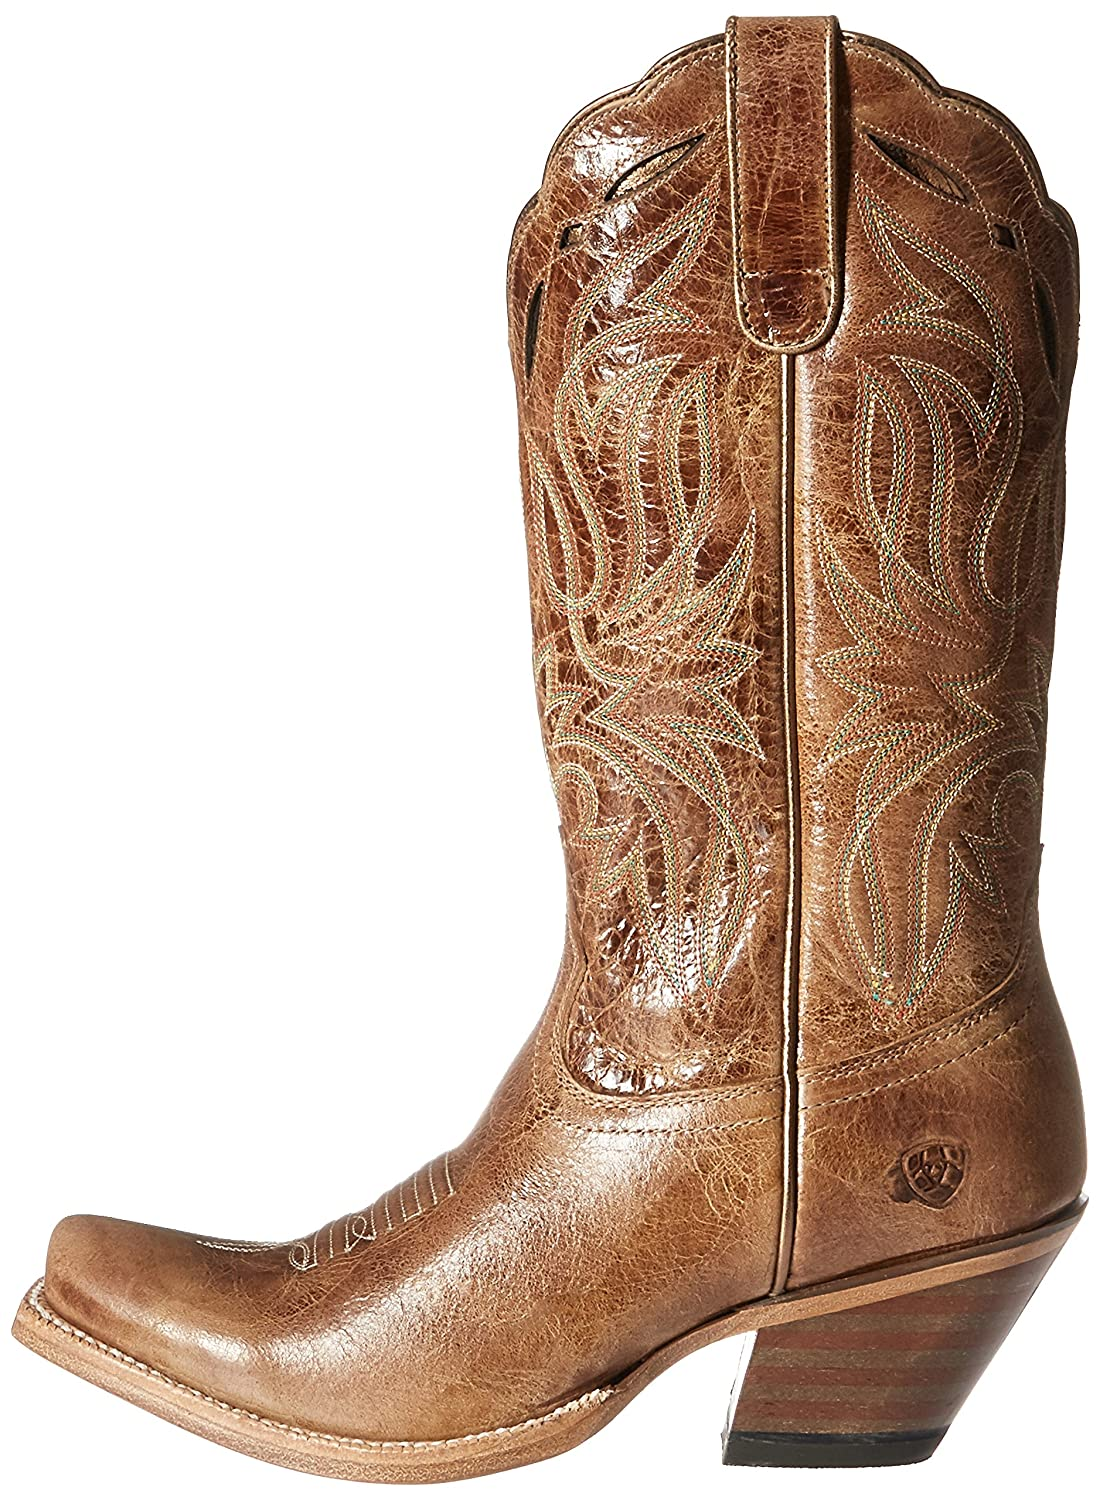 Ariat Boot Women's Bristol Western Cowboy Boot Ariat B01L91NXRA 7 B(M) US|Tan aee2eb